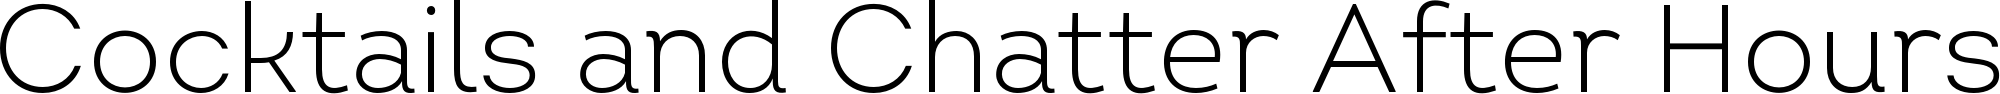 Intro Light